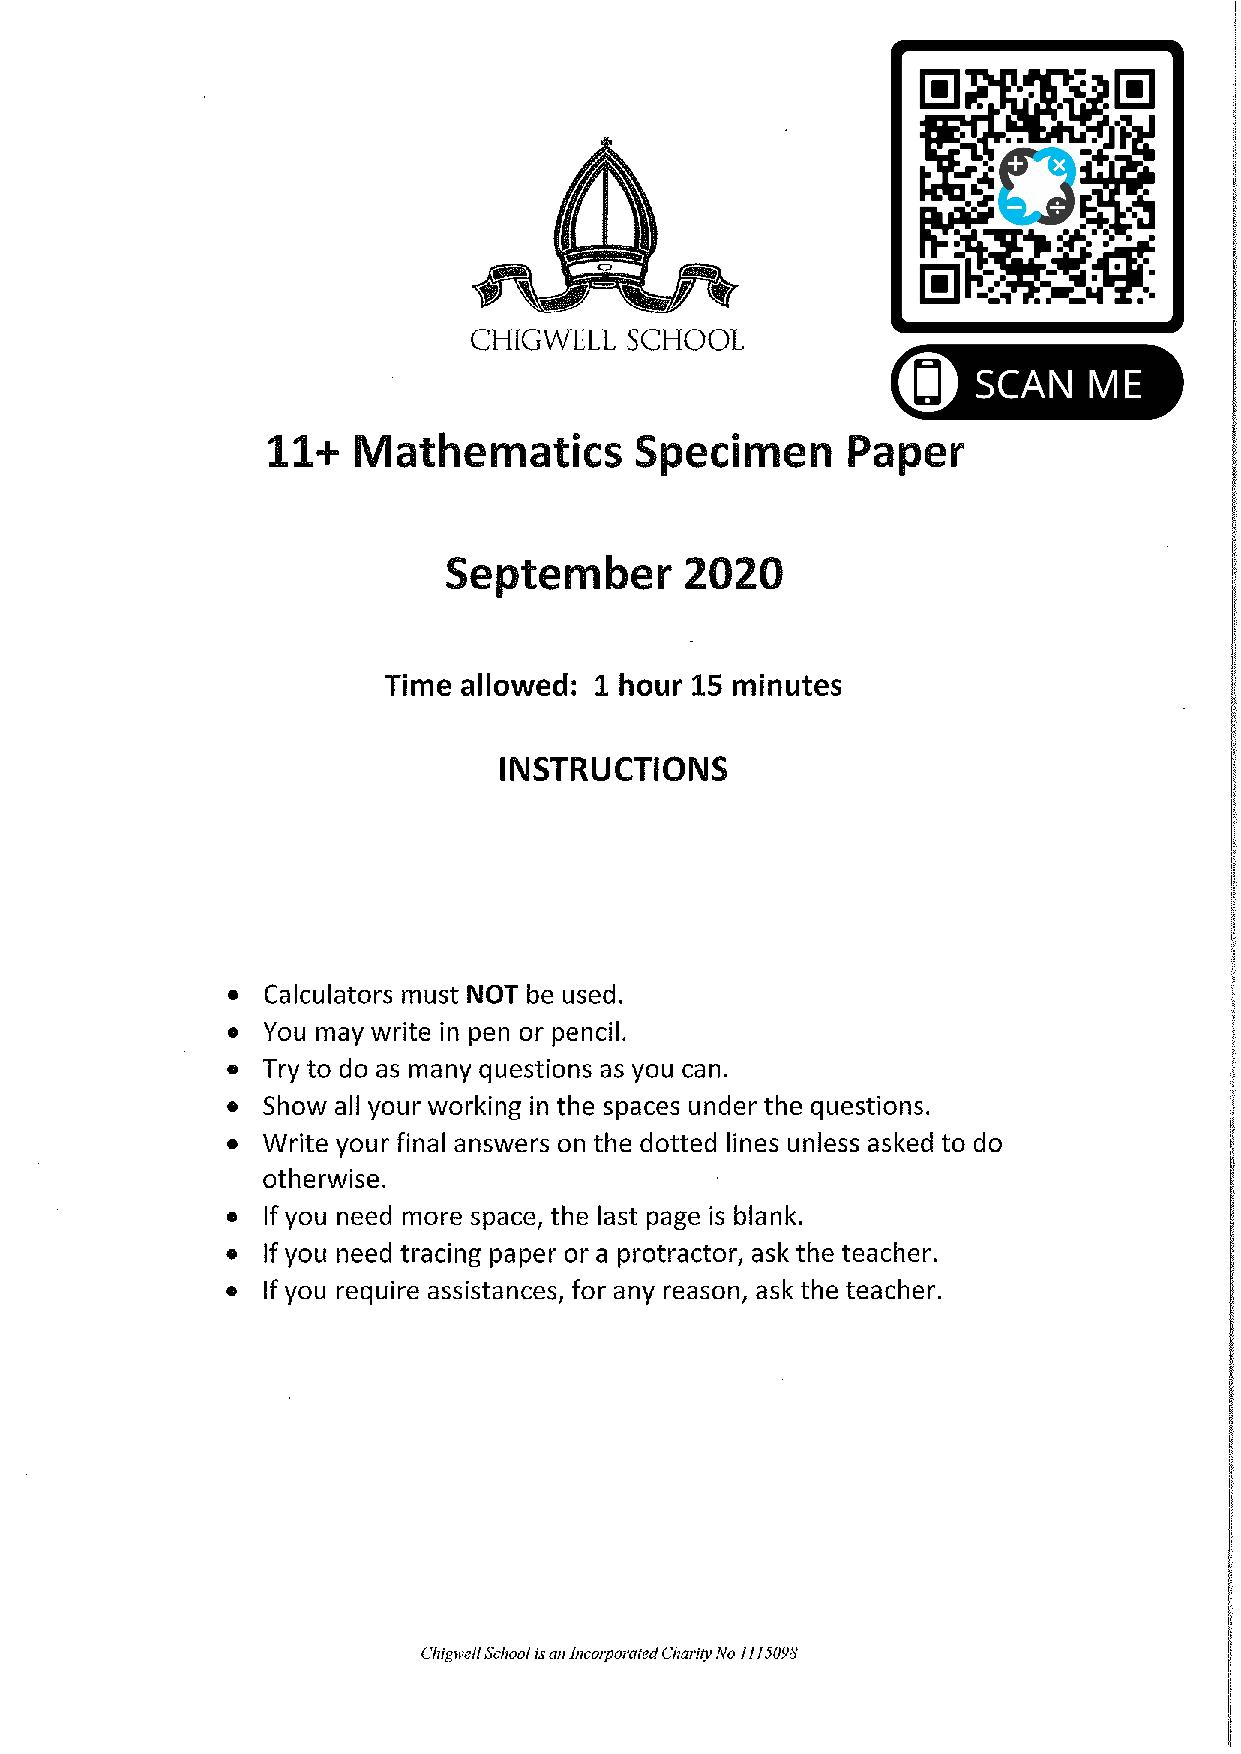 Chigwell School 11 Plus Maths Specimen Paper 2020 entry page 001